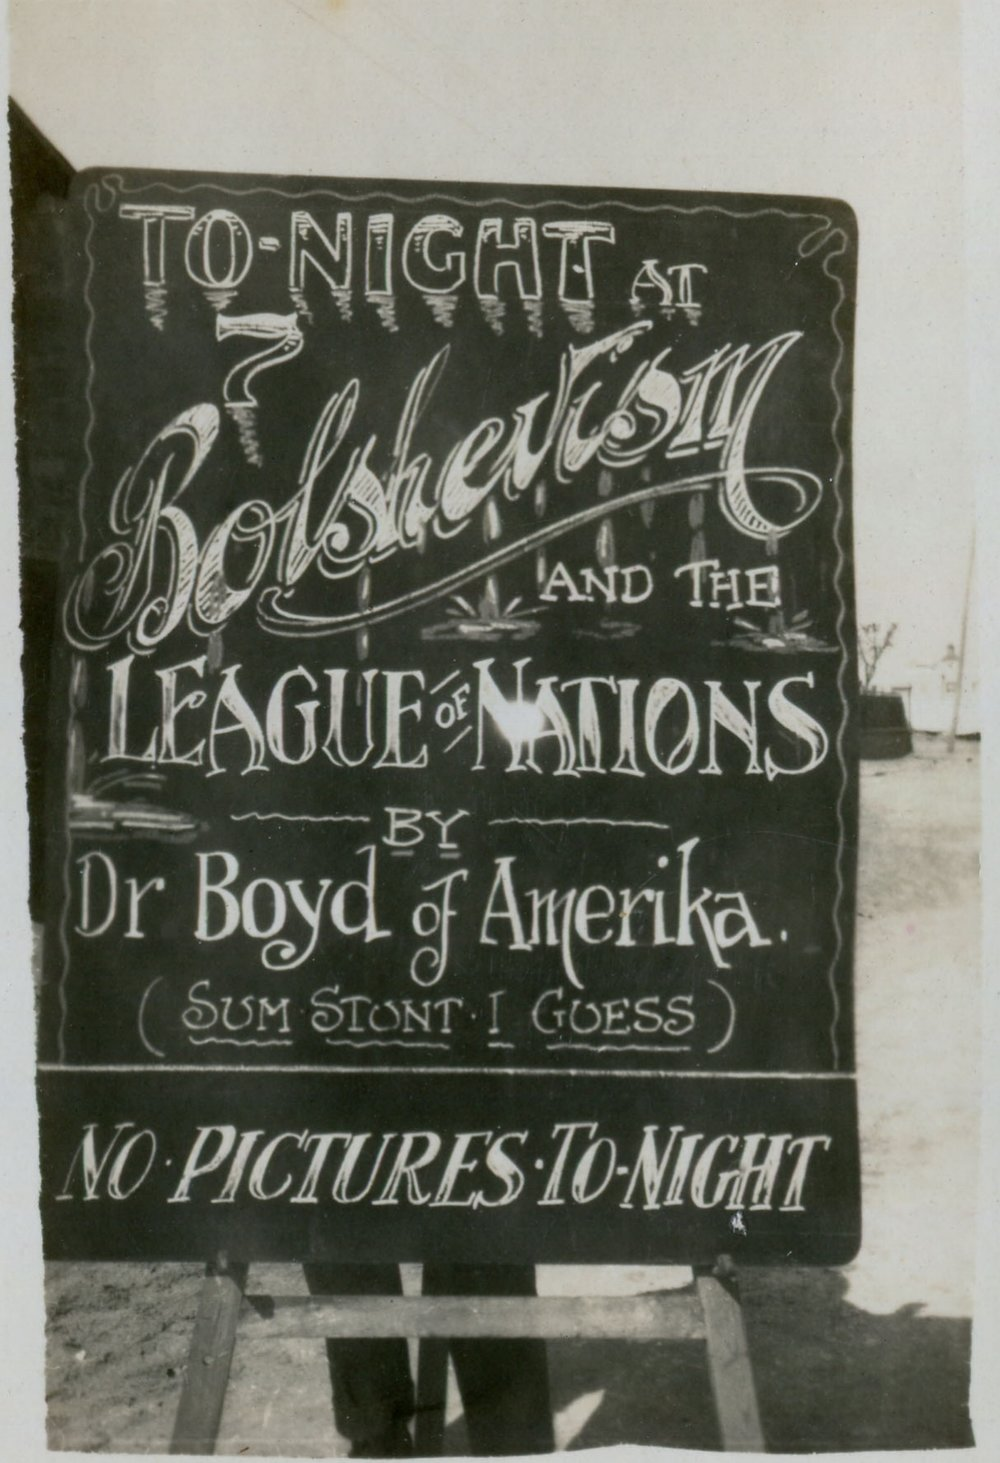 reg walters088 Dr Boyd Bolshevism and the League of Nations.jpg